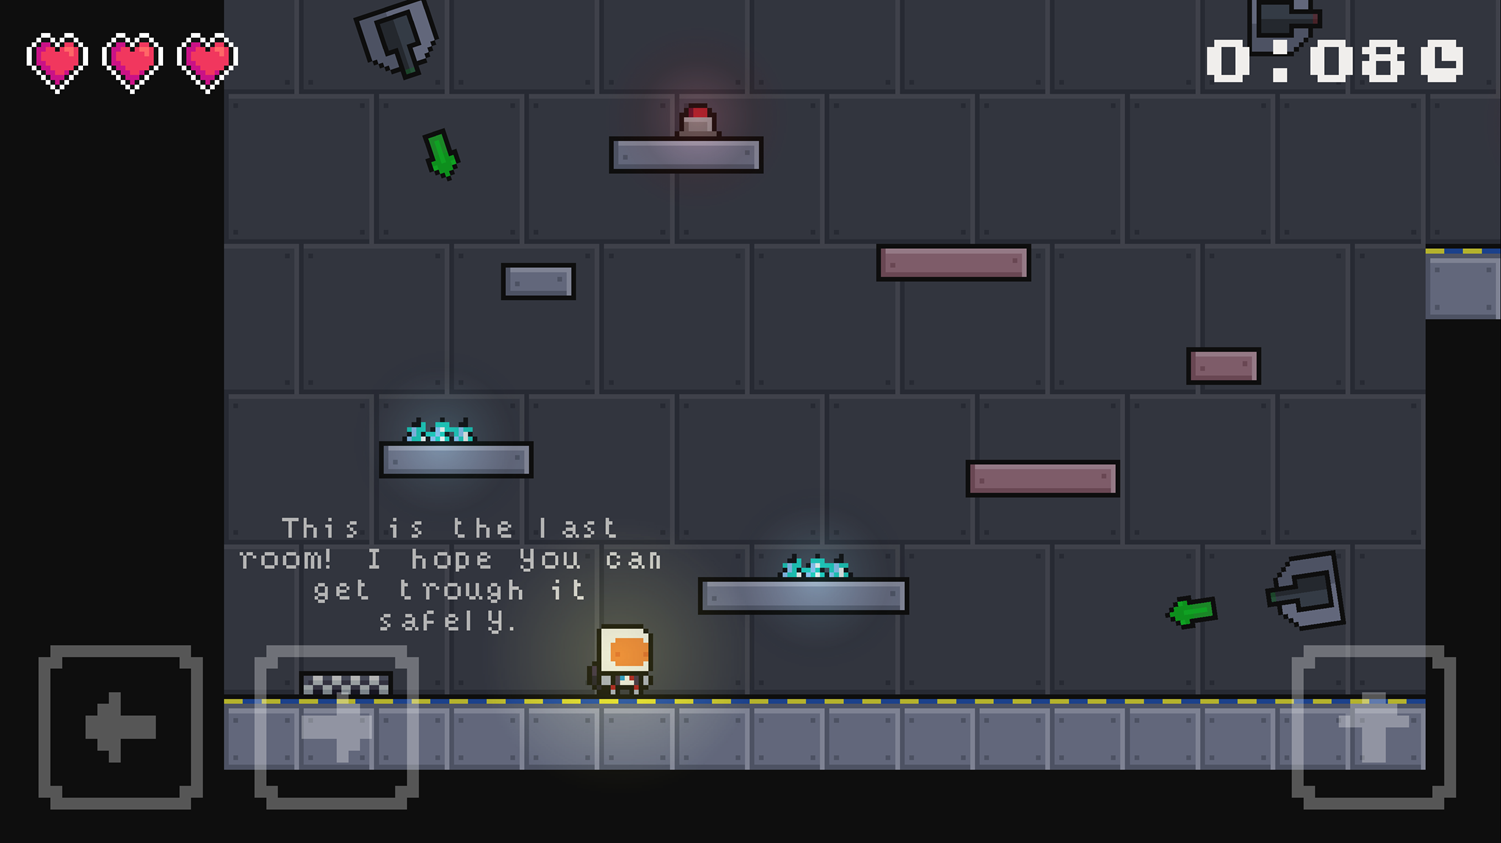 2 Minutes to Escape Final Stage Screenshot.